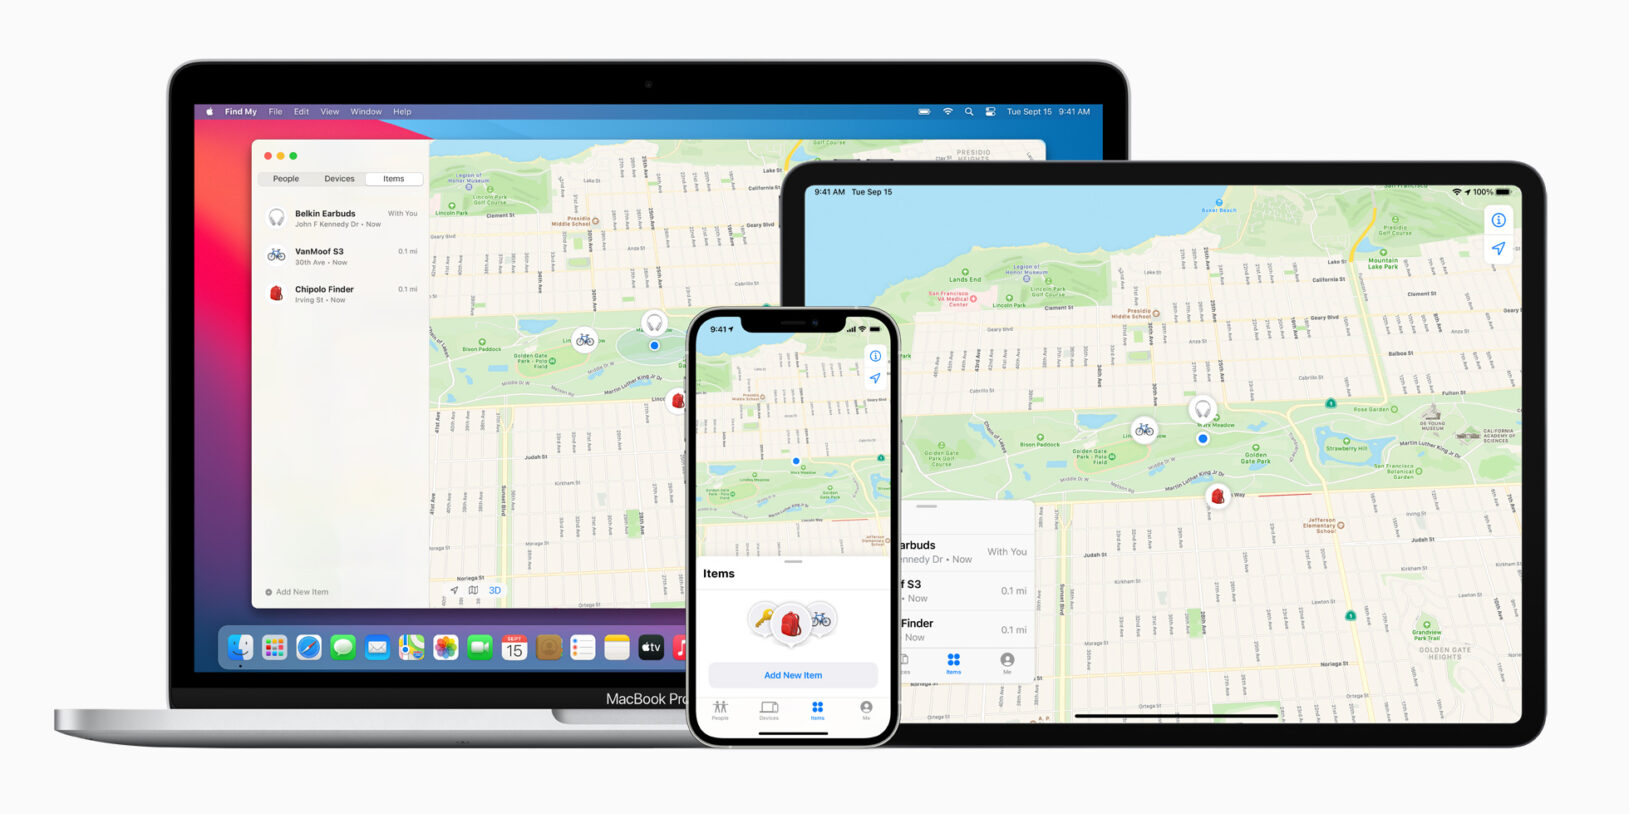 Apple find my network now offers new third party finding experiences macbookpro ipadpro iphone12pro 040721 big.jpg.large 2x